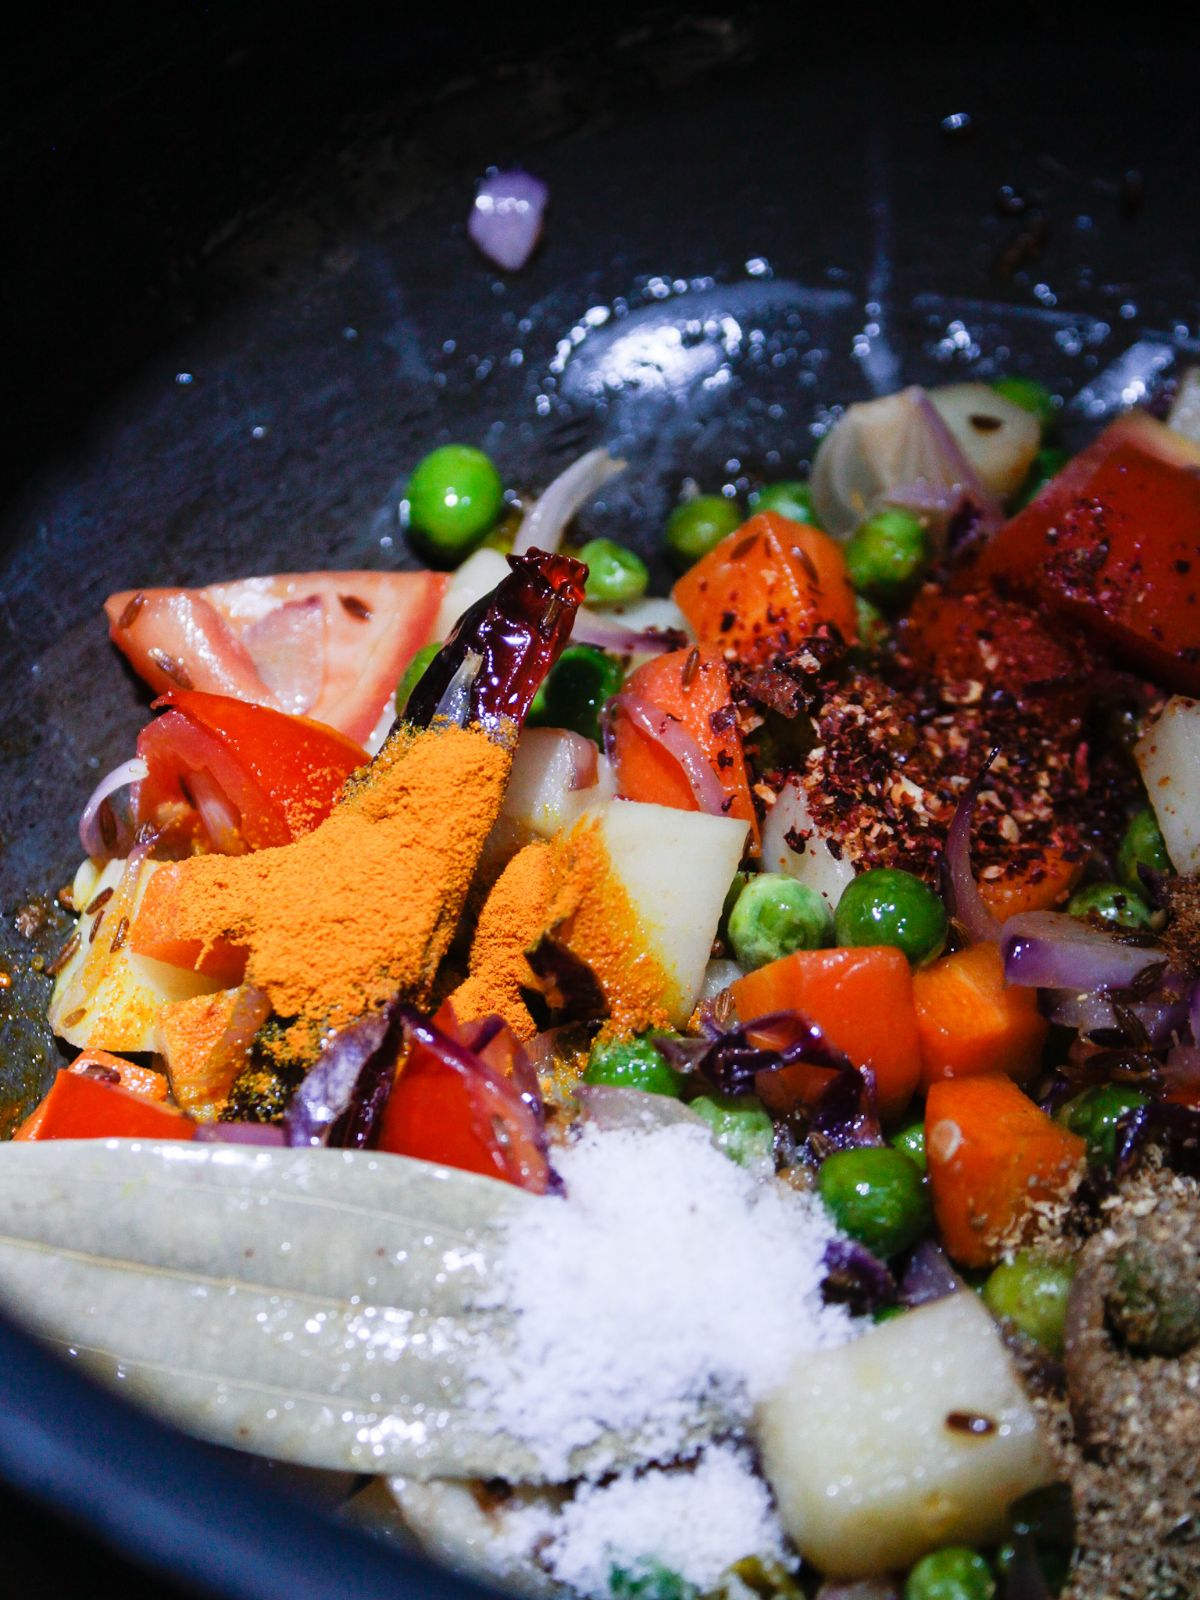 Skillet with tomatoes carrots potatoes peas and dry spices